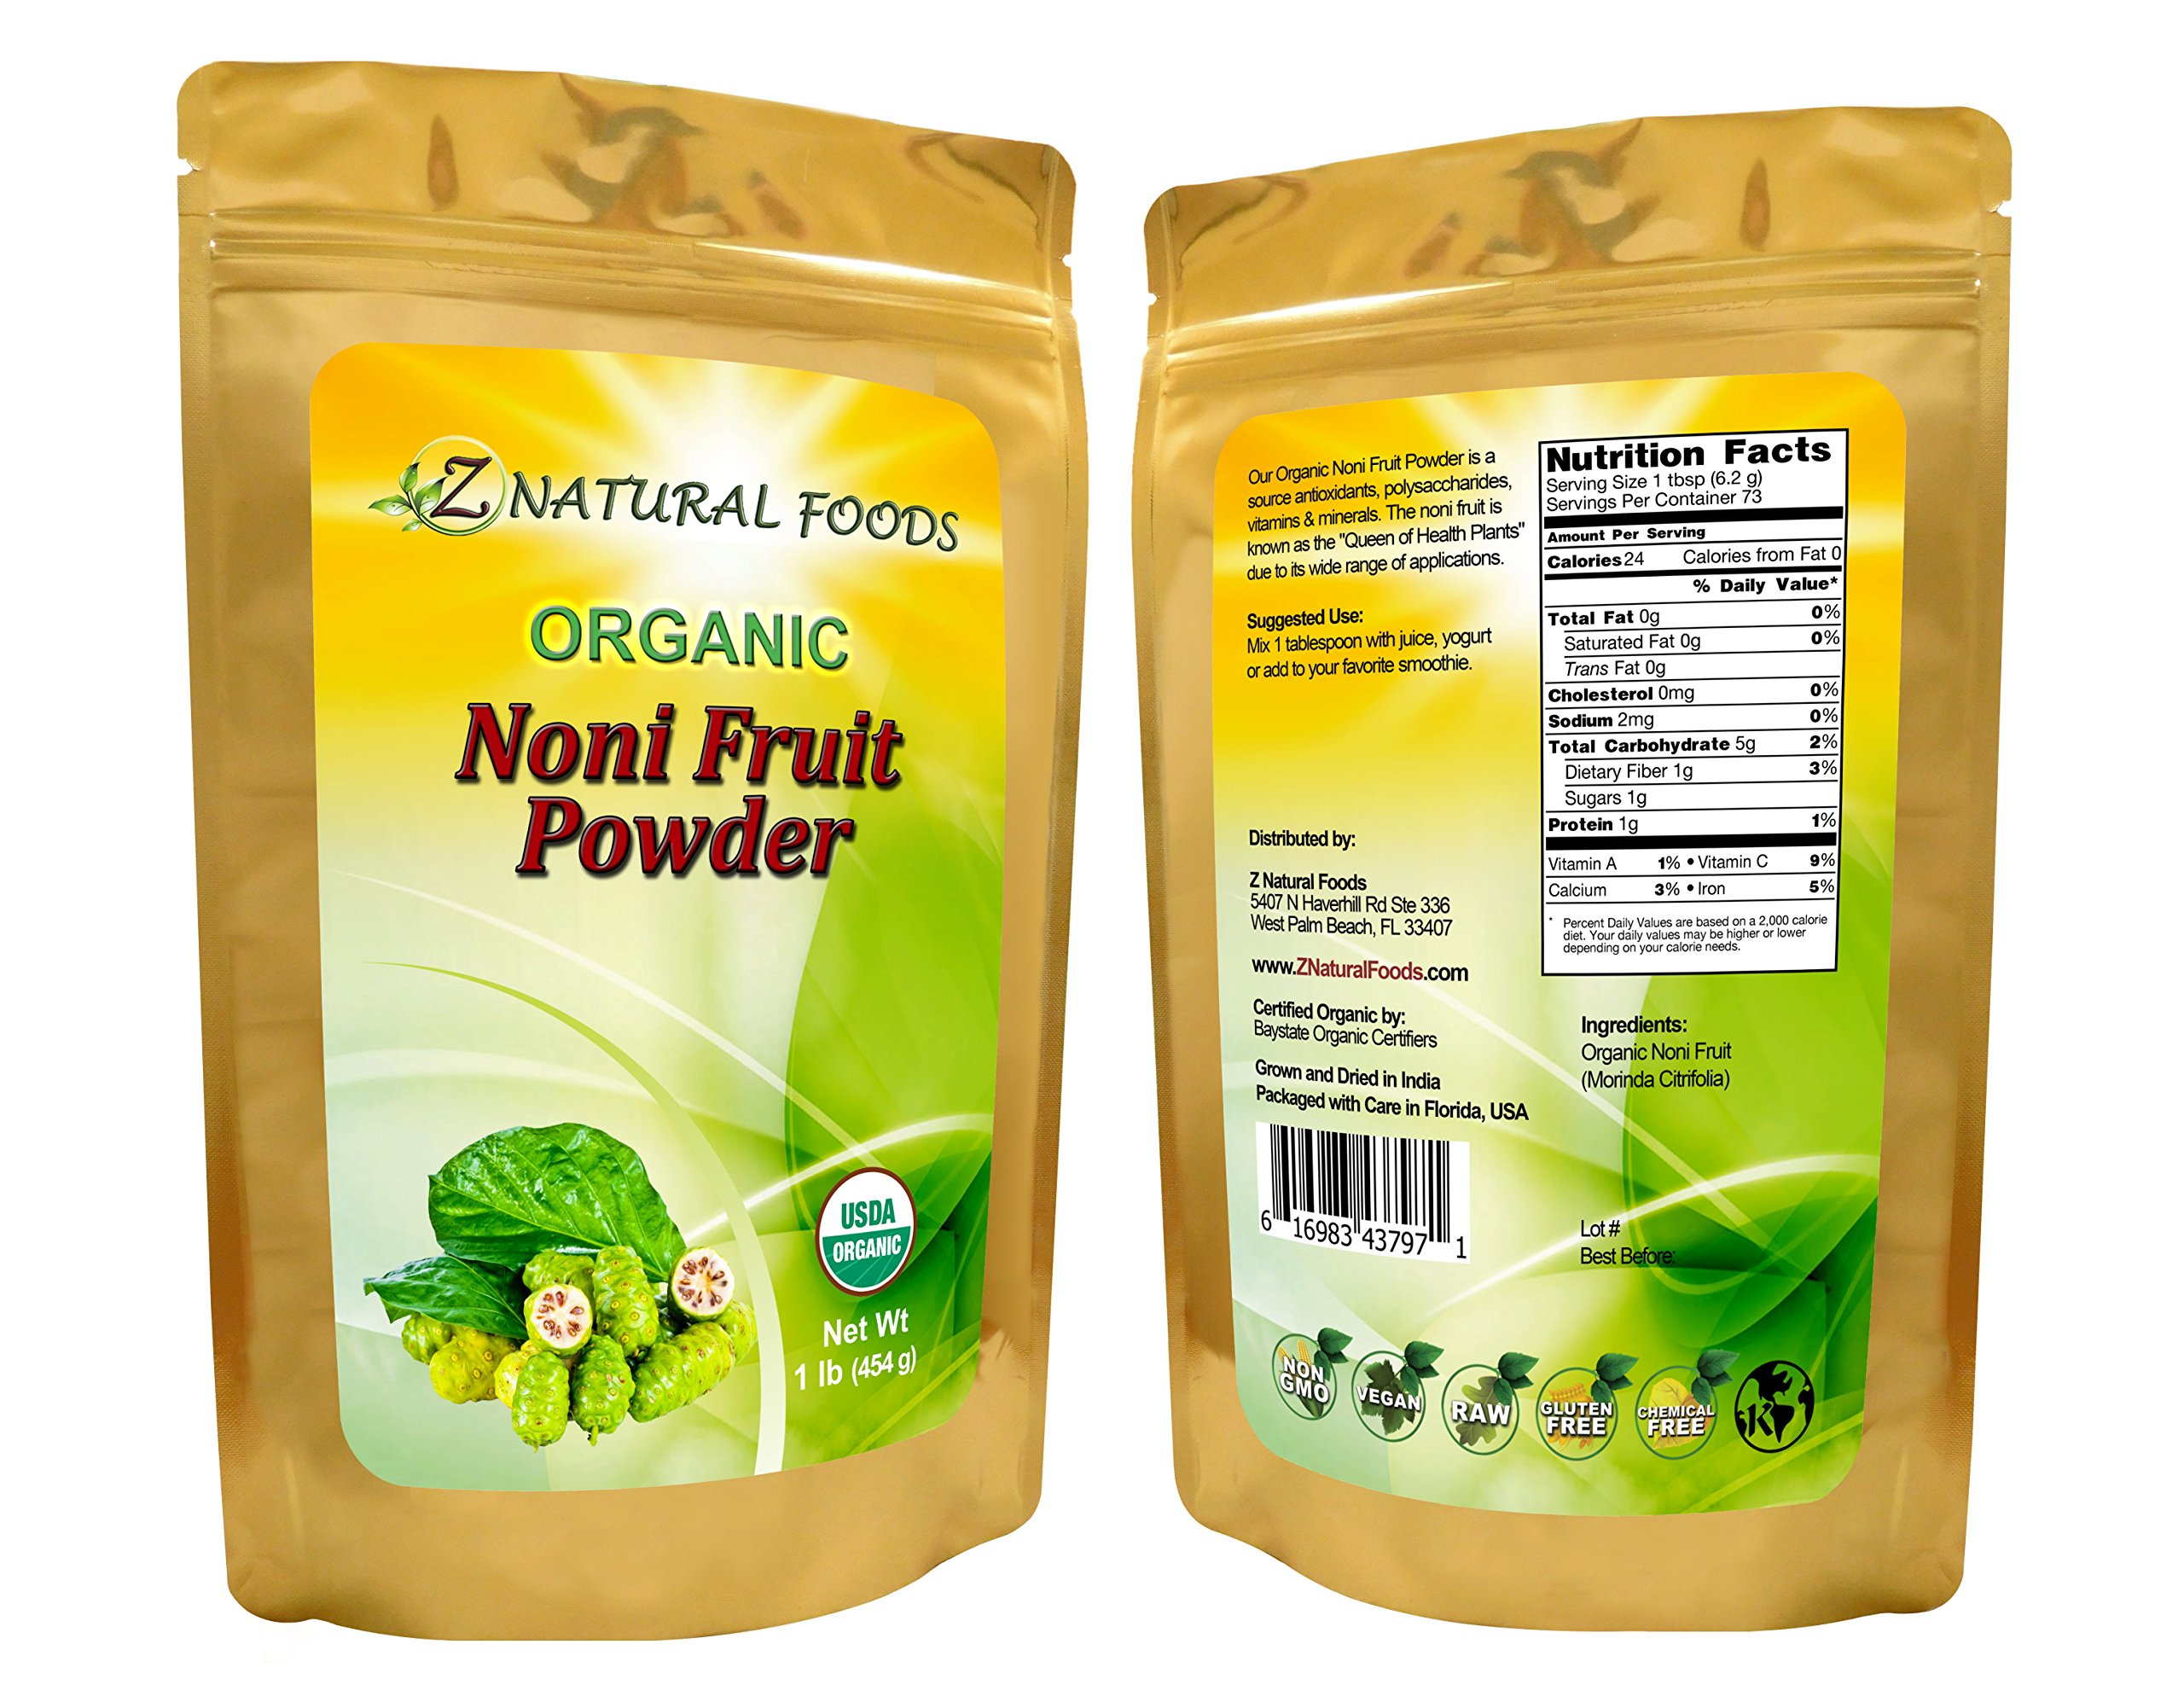 USDA Certified Organic Fresh Noni Fruit Powder - Superfood, Non-GMO, Raw, Pure, 73 servings (1 lb)